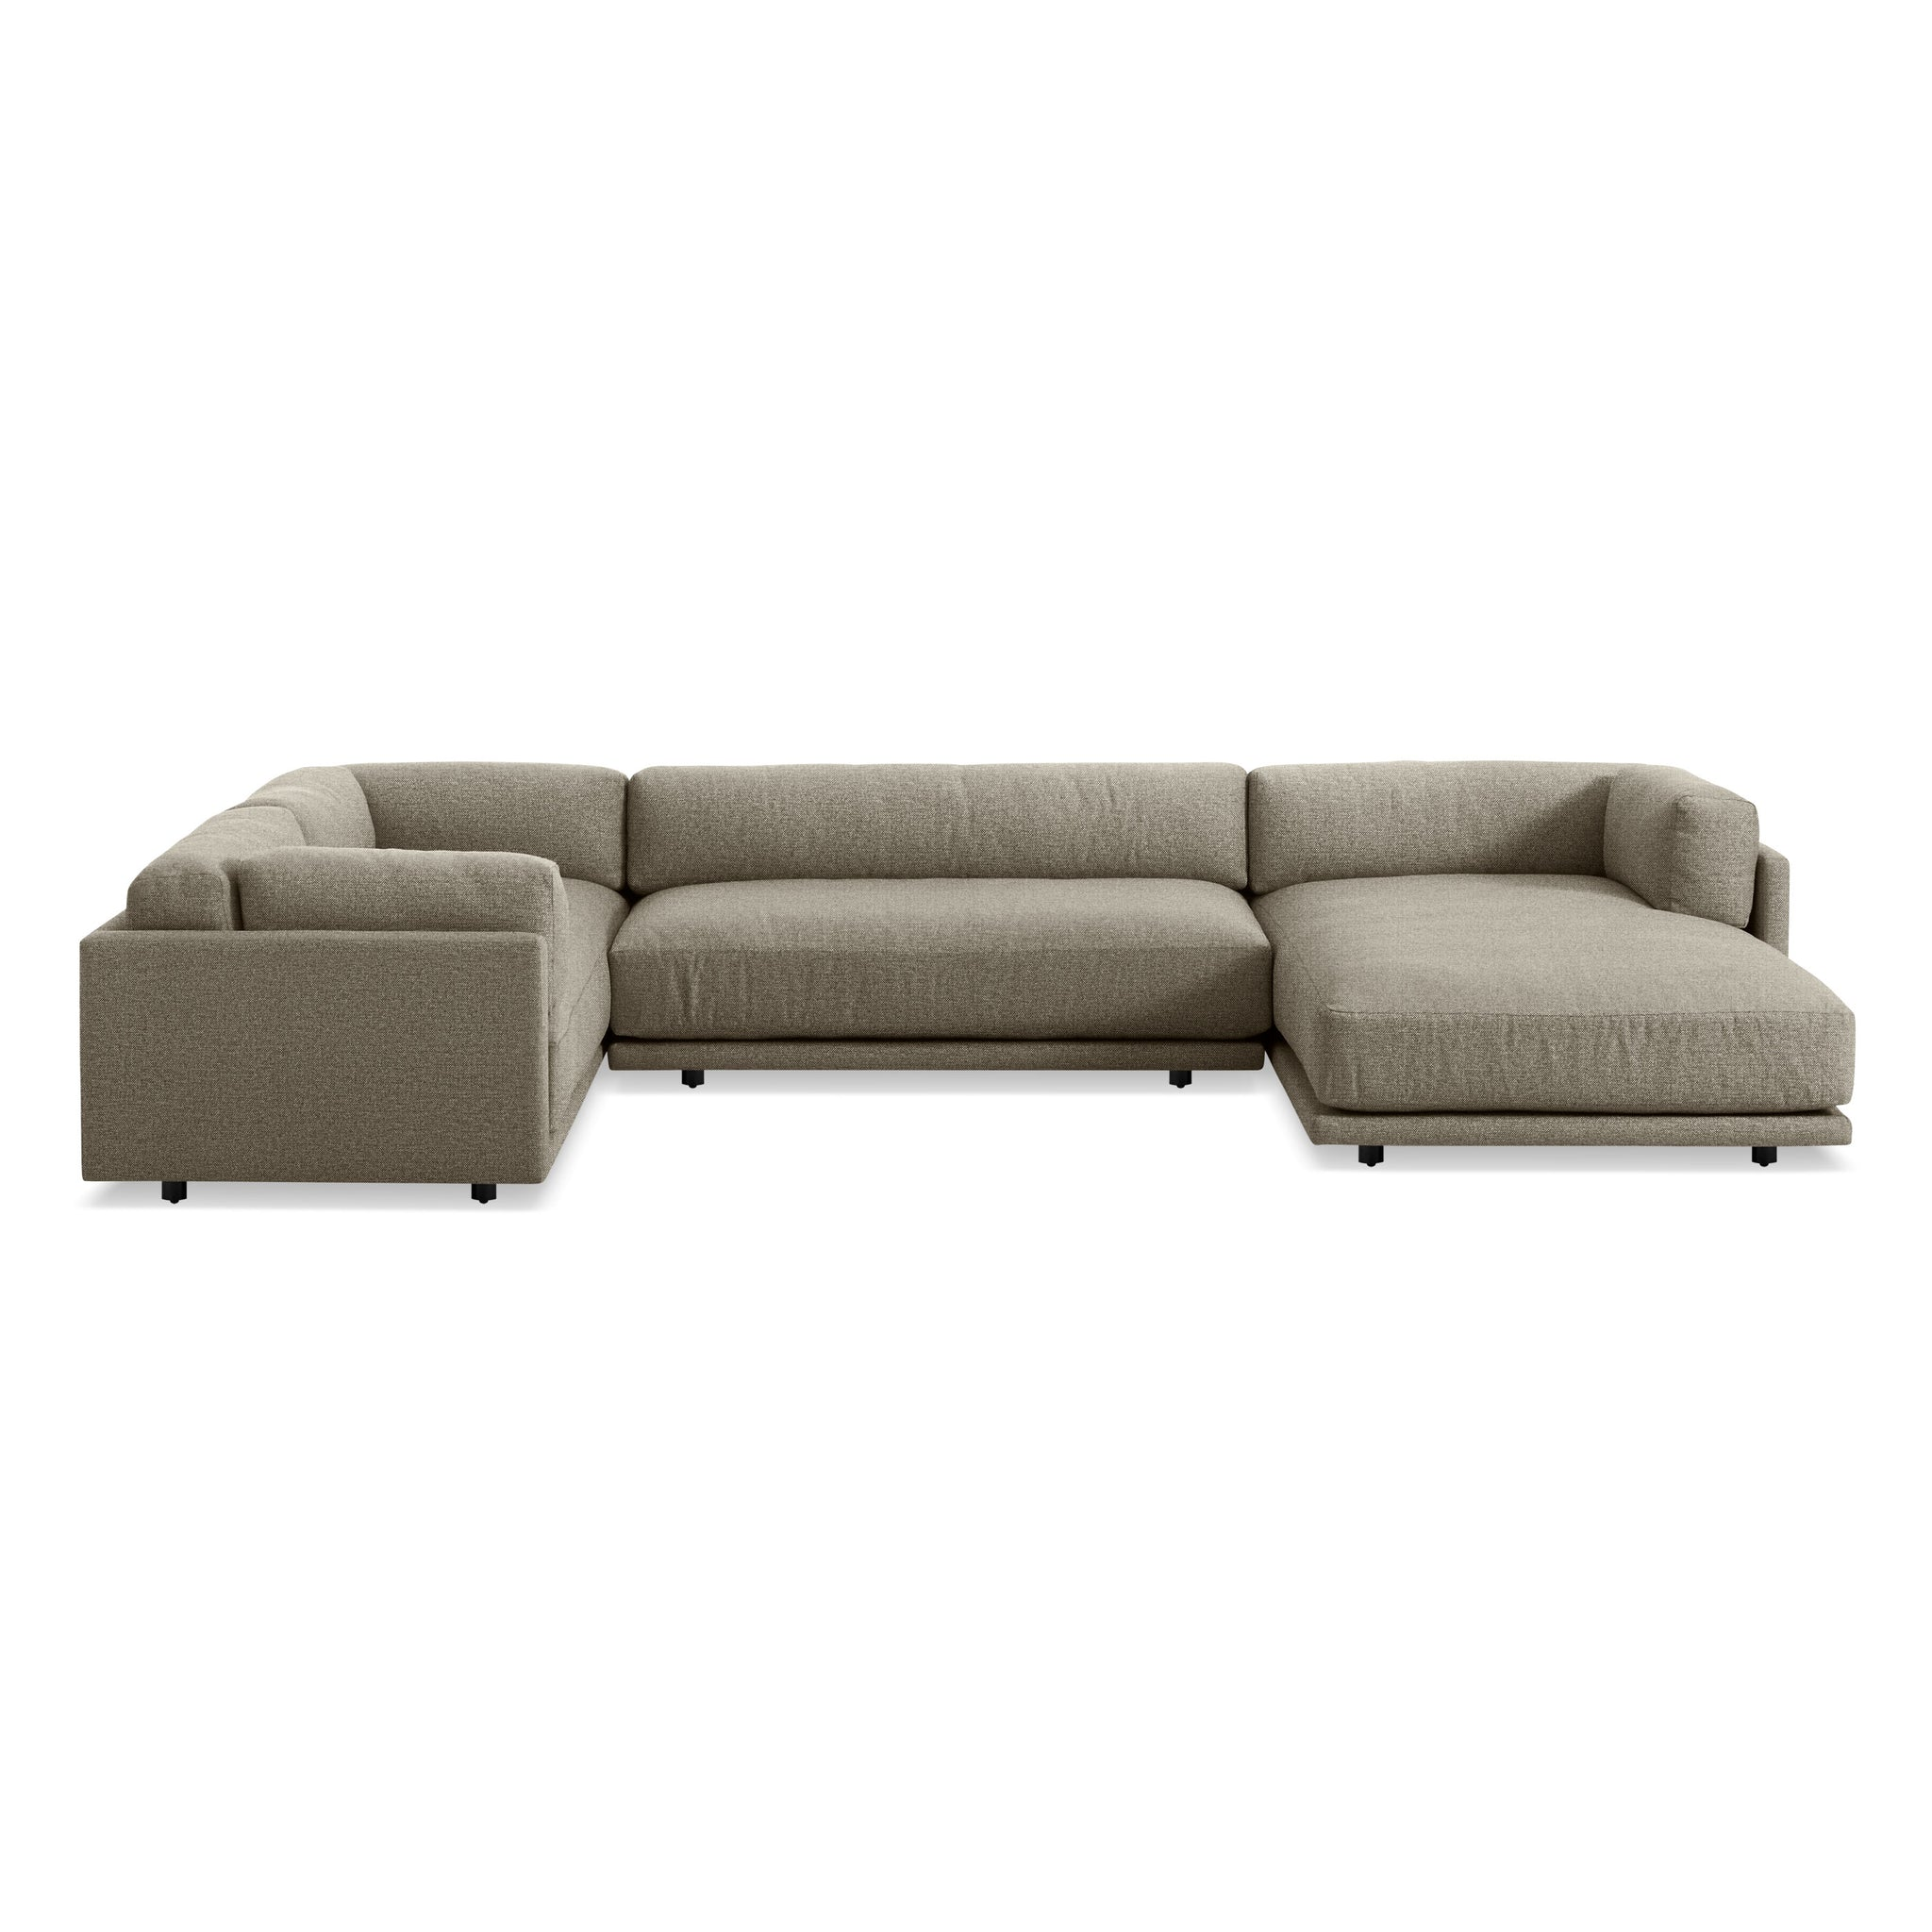 Sunday L Sectional Sofa w/ Right Arm Chaise